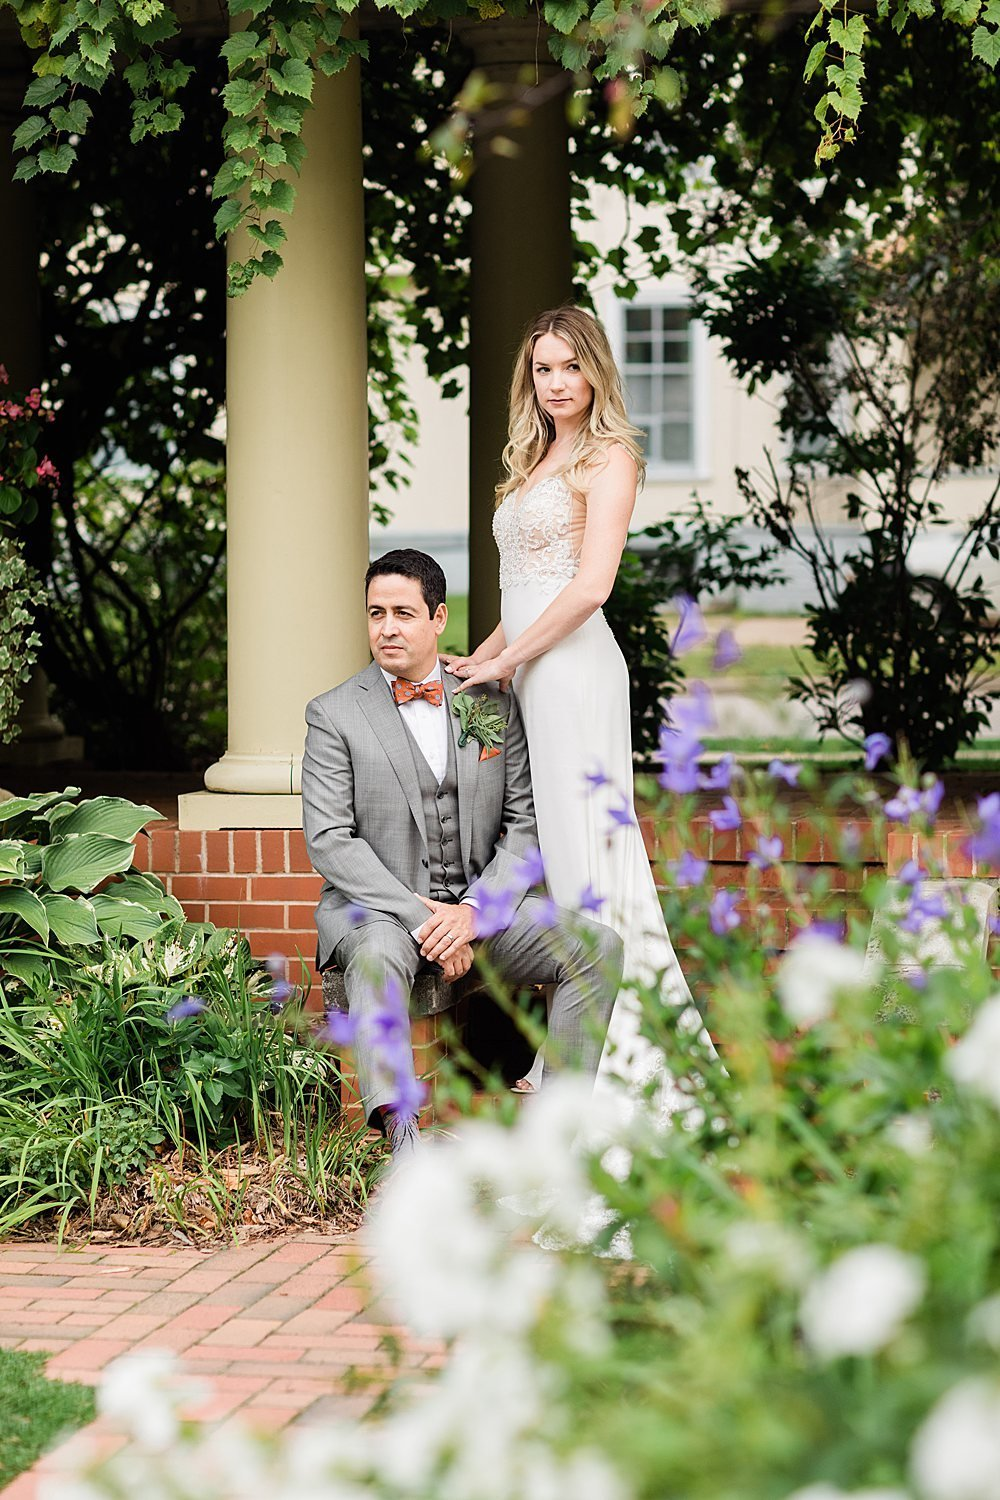 75-Wausau-WI-Country-Club-Wedding-Photo-James-Stokes-Photography